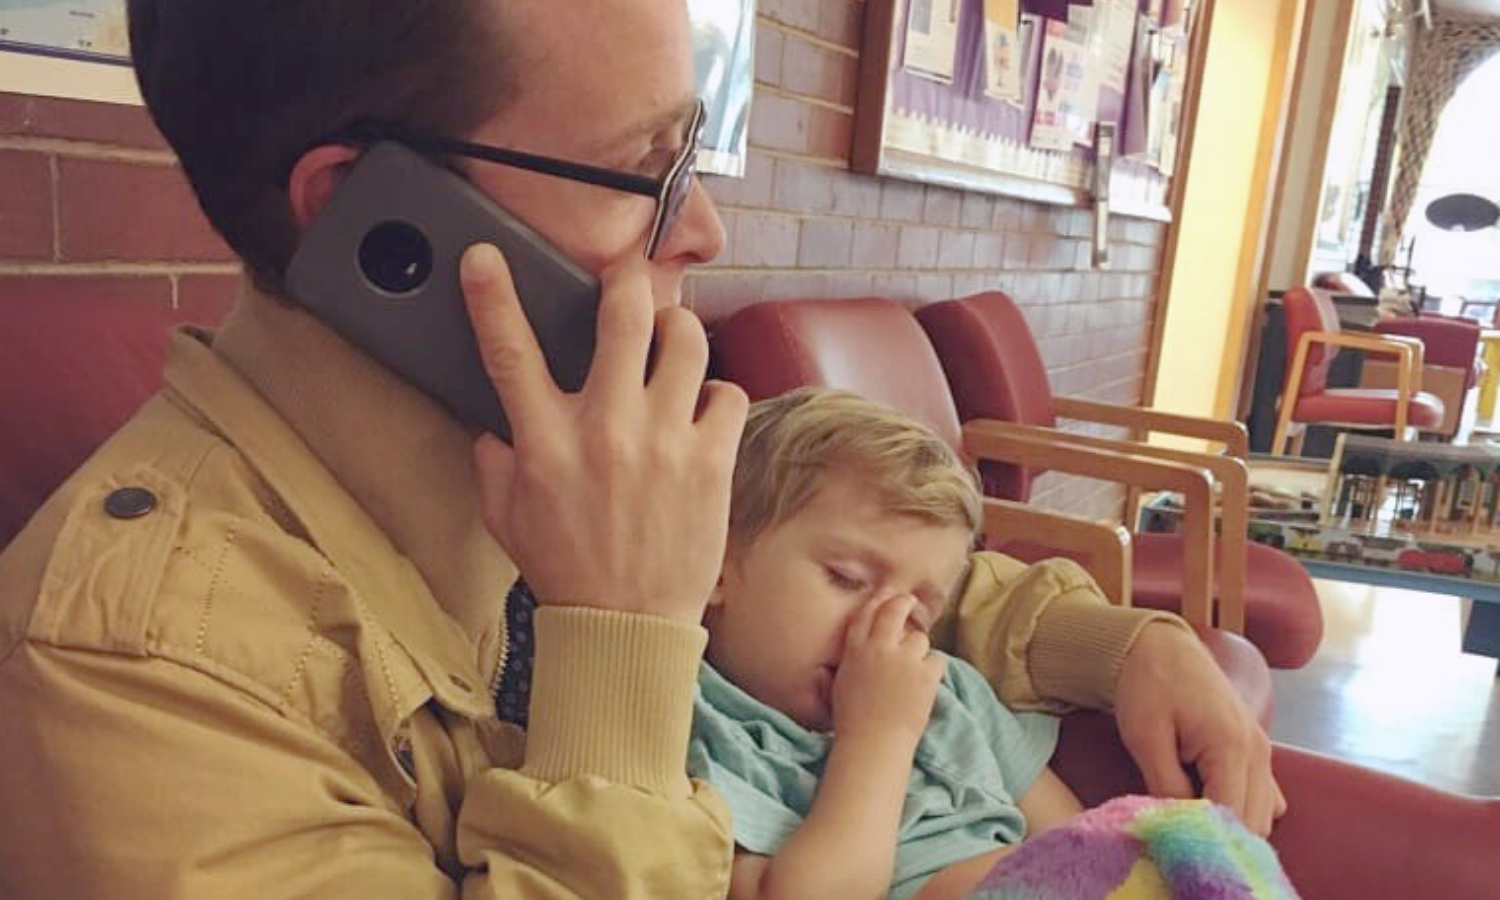 A man is sitting holding a phone up to his ear while a toddler sleeps on him. The toddler is holding a rainbow colored stuffed animal.